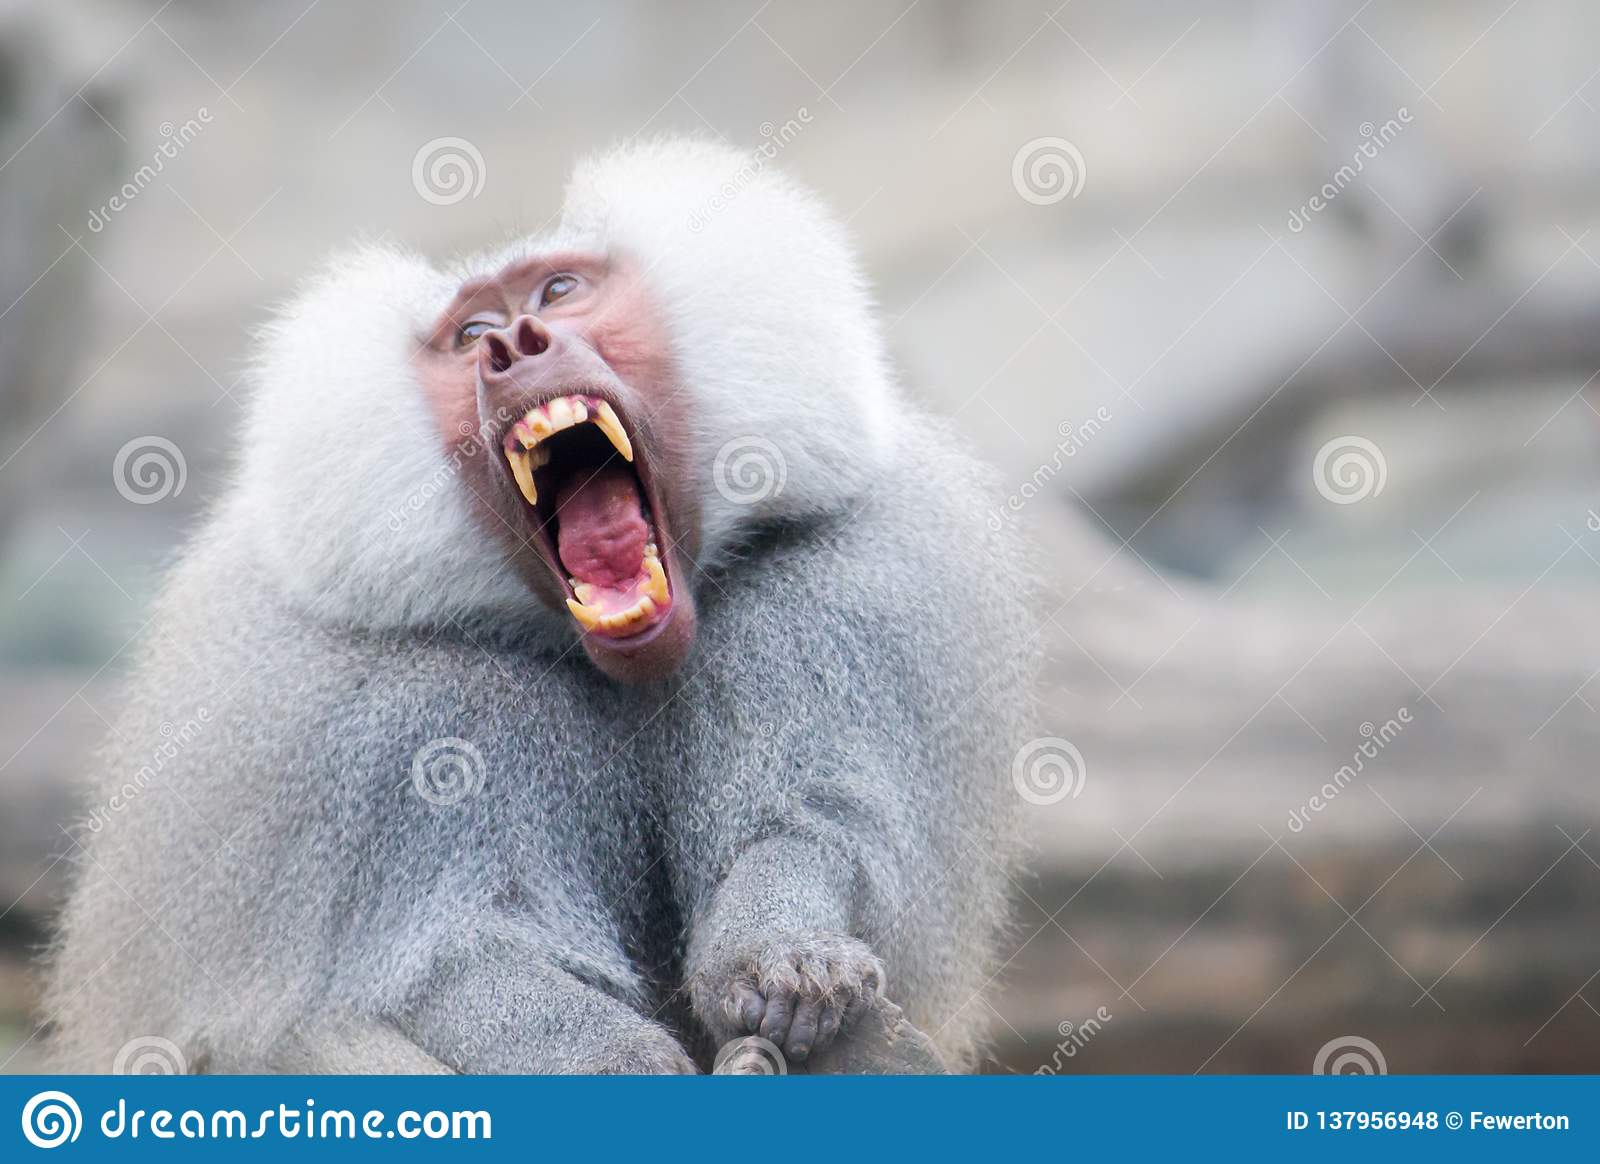 Baboon monkey Pavian, genus Papio screaming out loud with large open mouth and showing pronounced sharp teeth